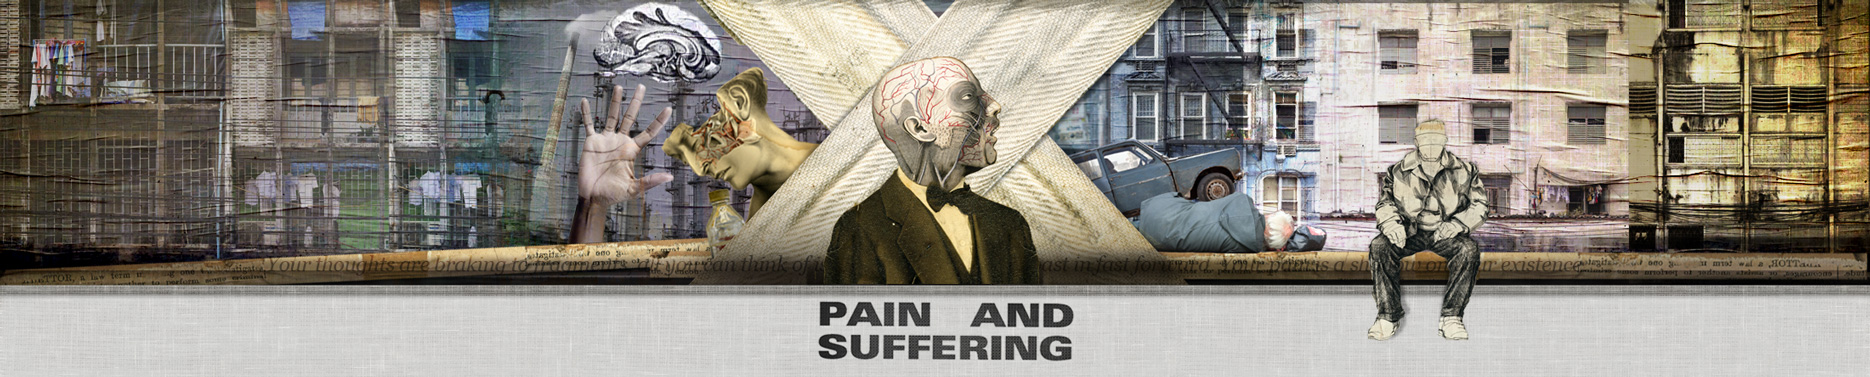 Pain And Suffering Project | Interdisciplinary Program